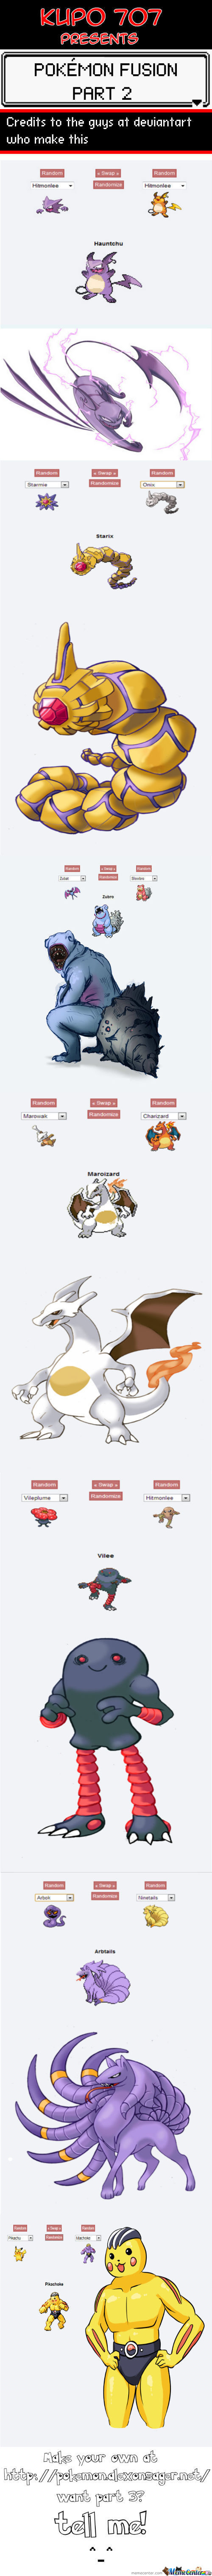 Best Of Pokémon Fusion : Part 2